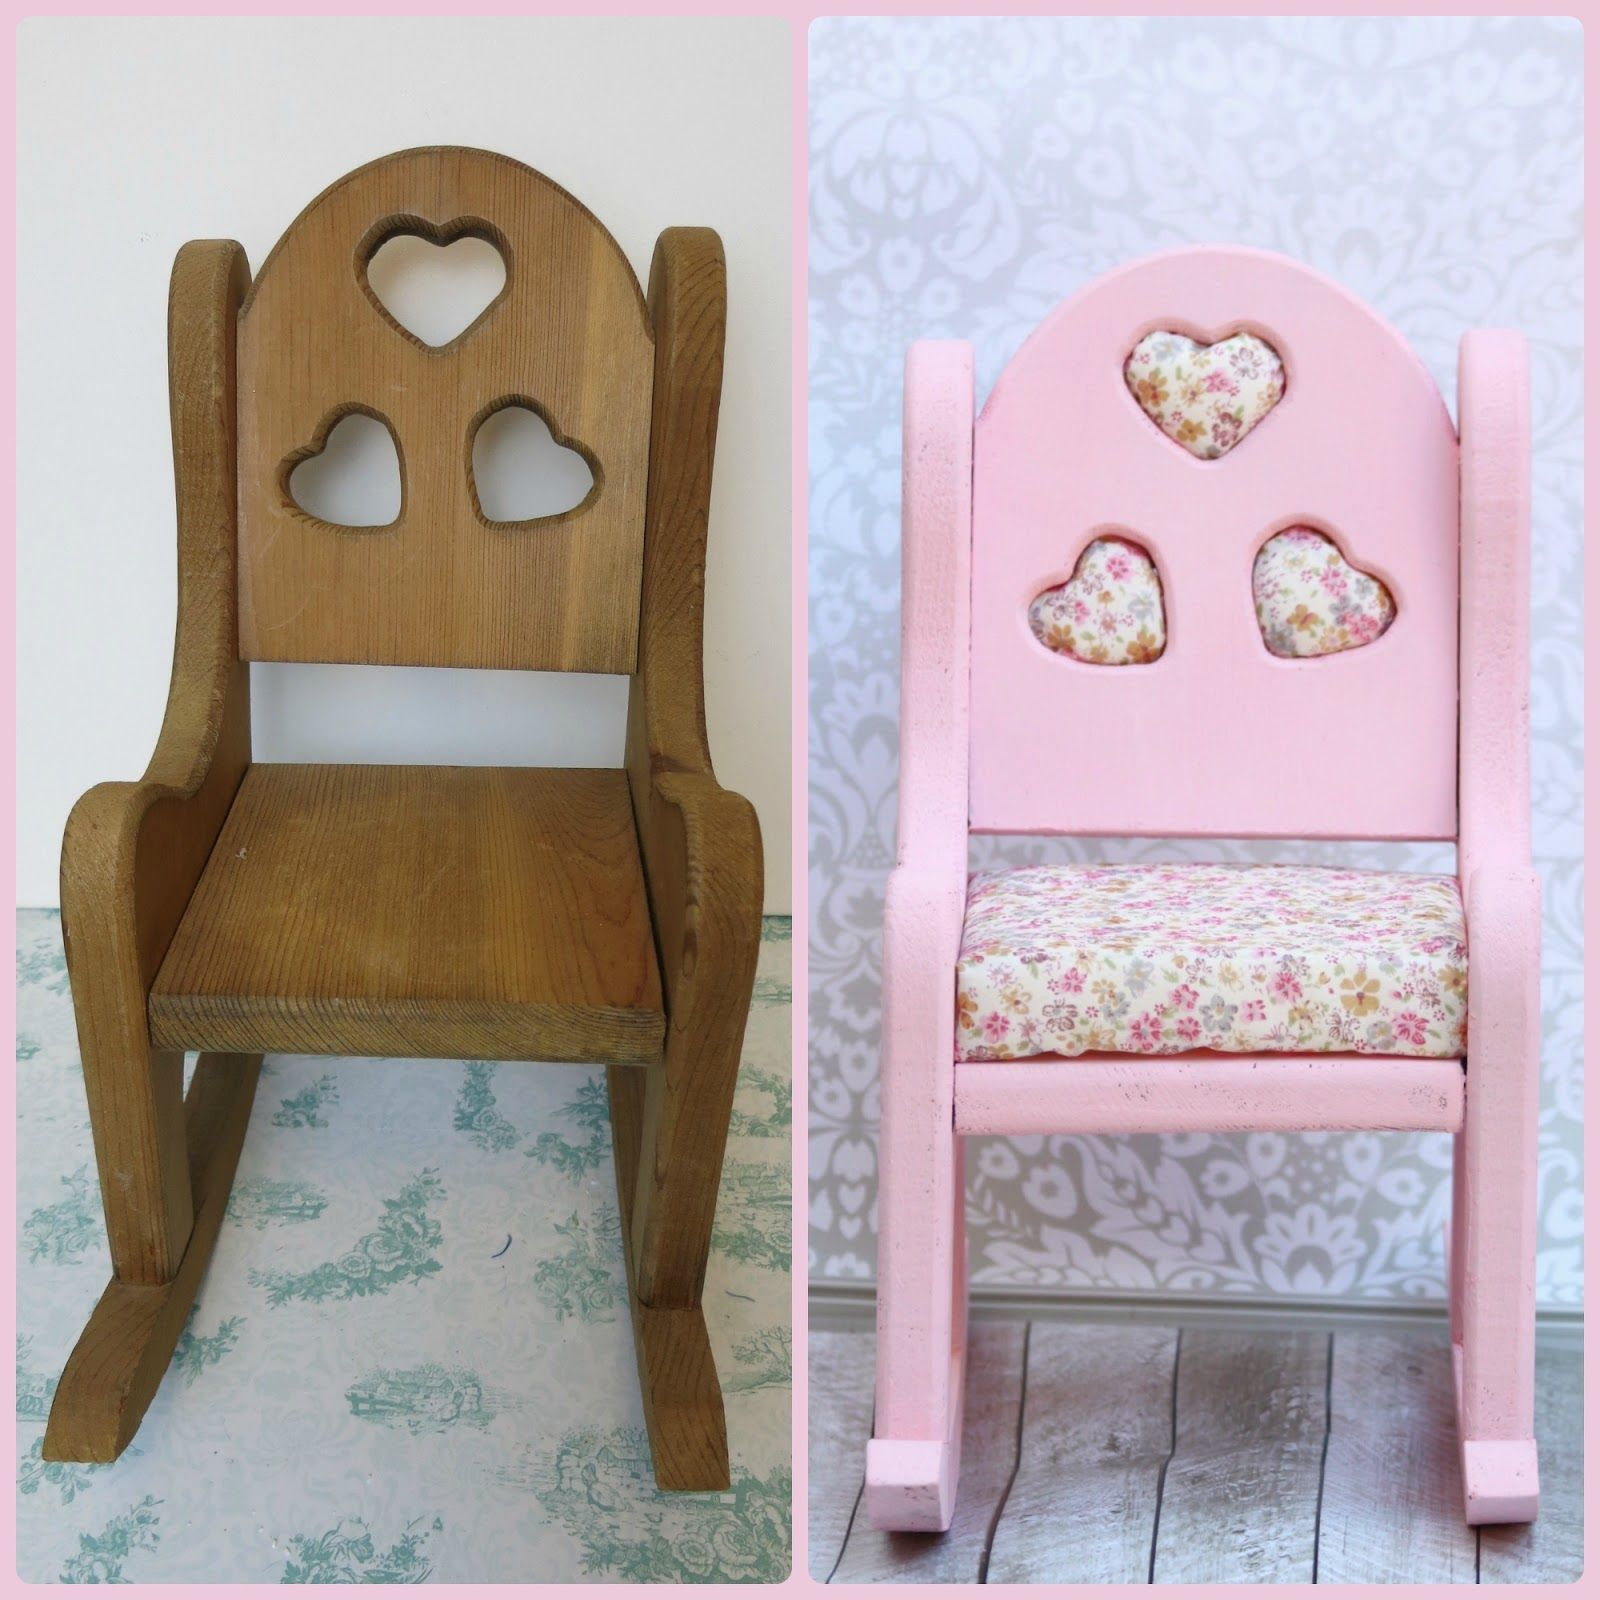 How to Update an Old Rocking Chair with Chalk Paint and Project Foam Cushions